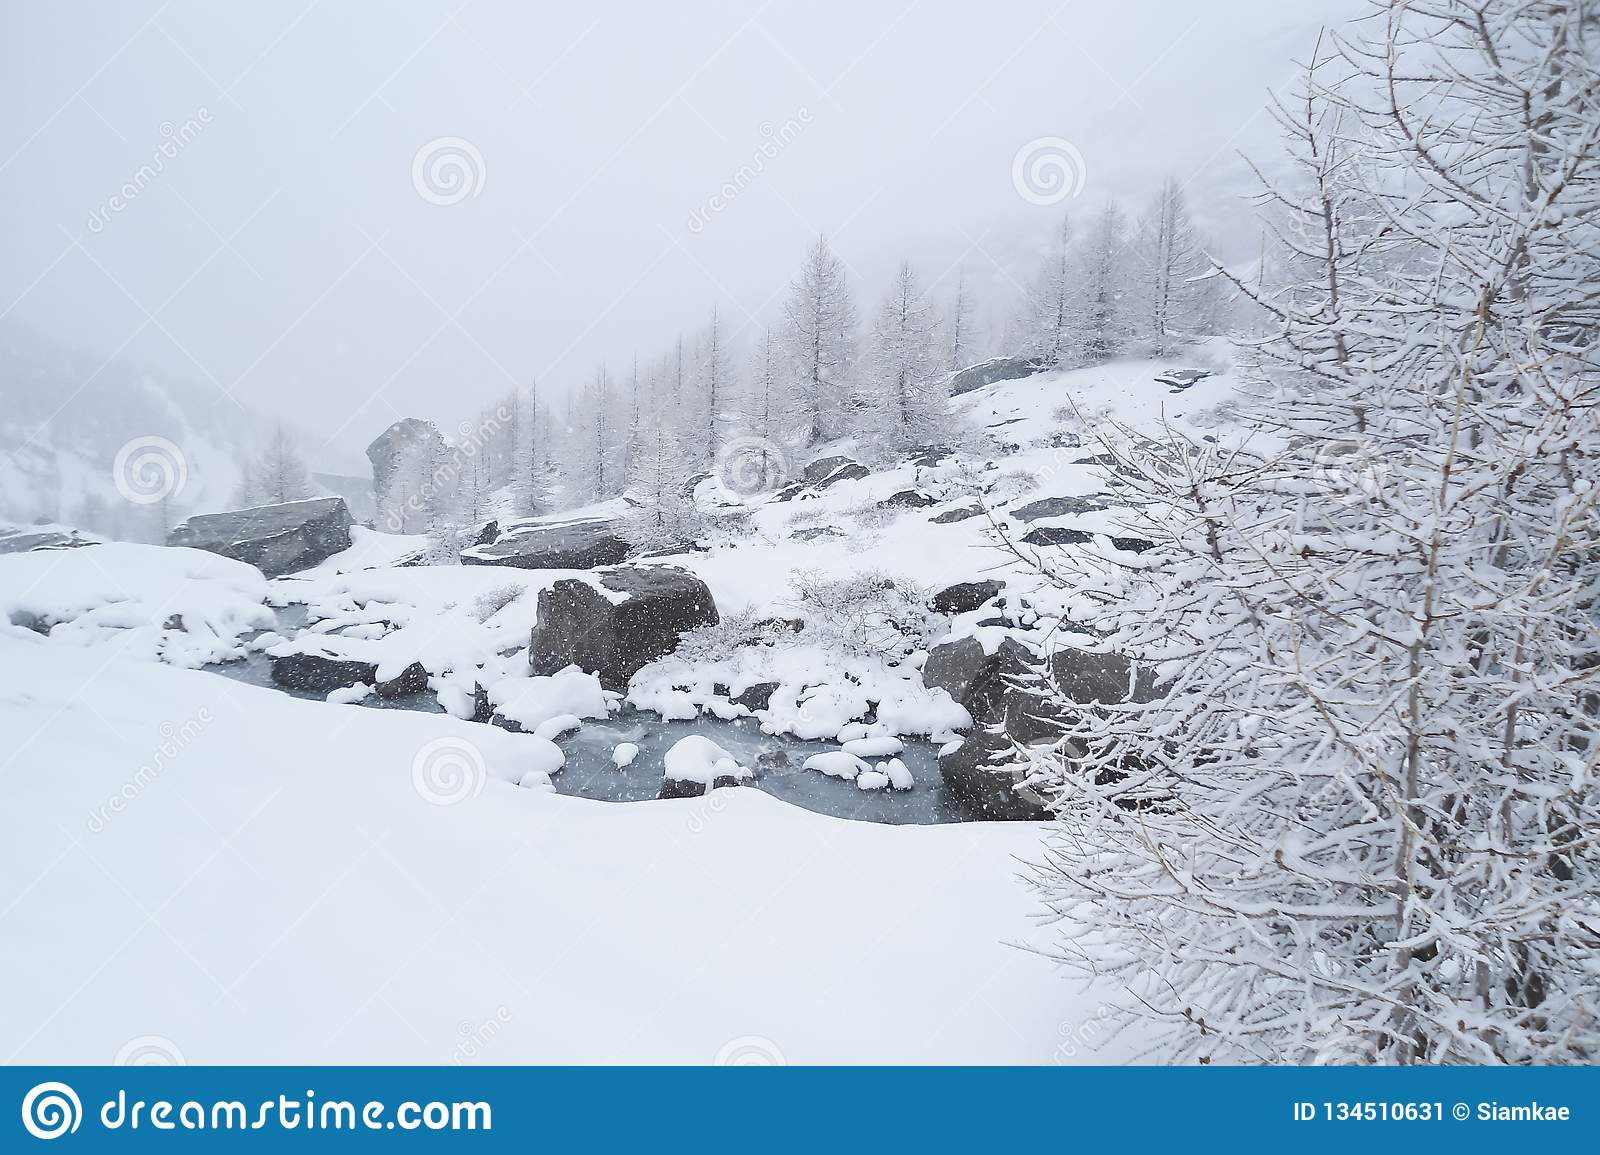 winter alpine landscape with a mountain stream bubbling over rocks